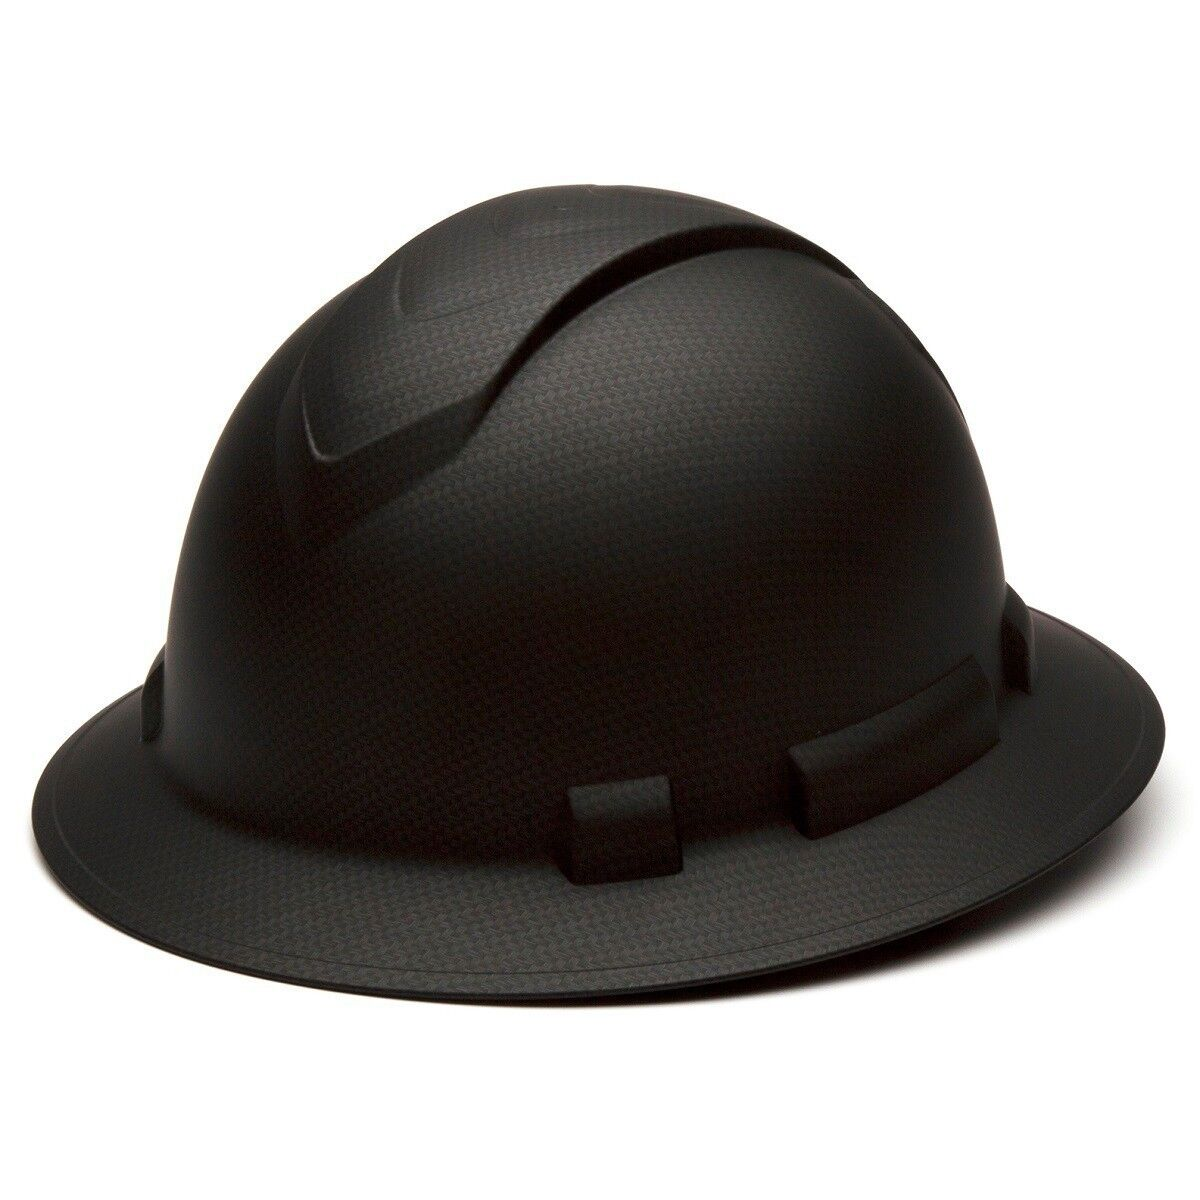 Pyramex HP54117 Ridgeline Graphite FULL BRIM Black Hard Hat W/4 Pt Ratchet Susp Business & Industrial